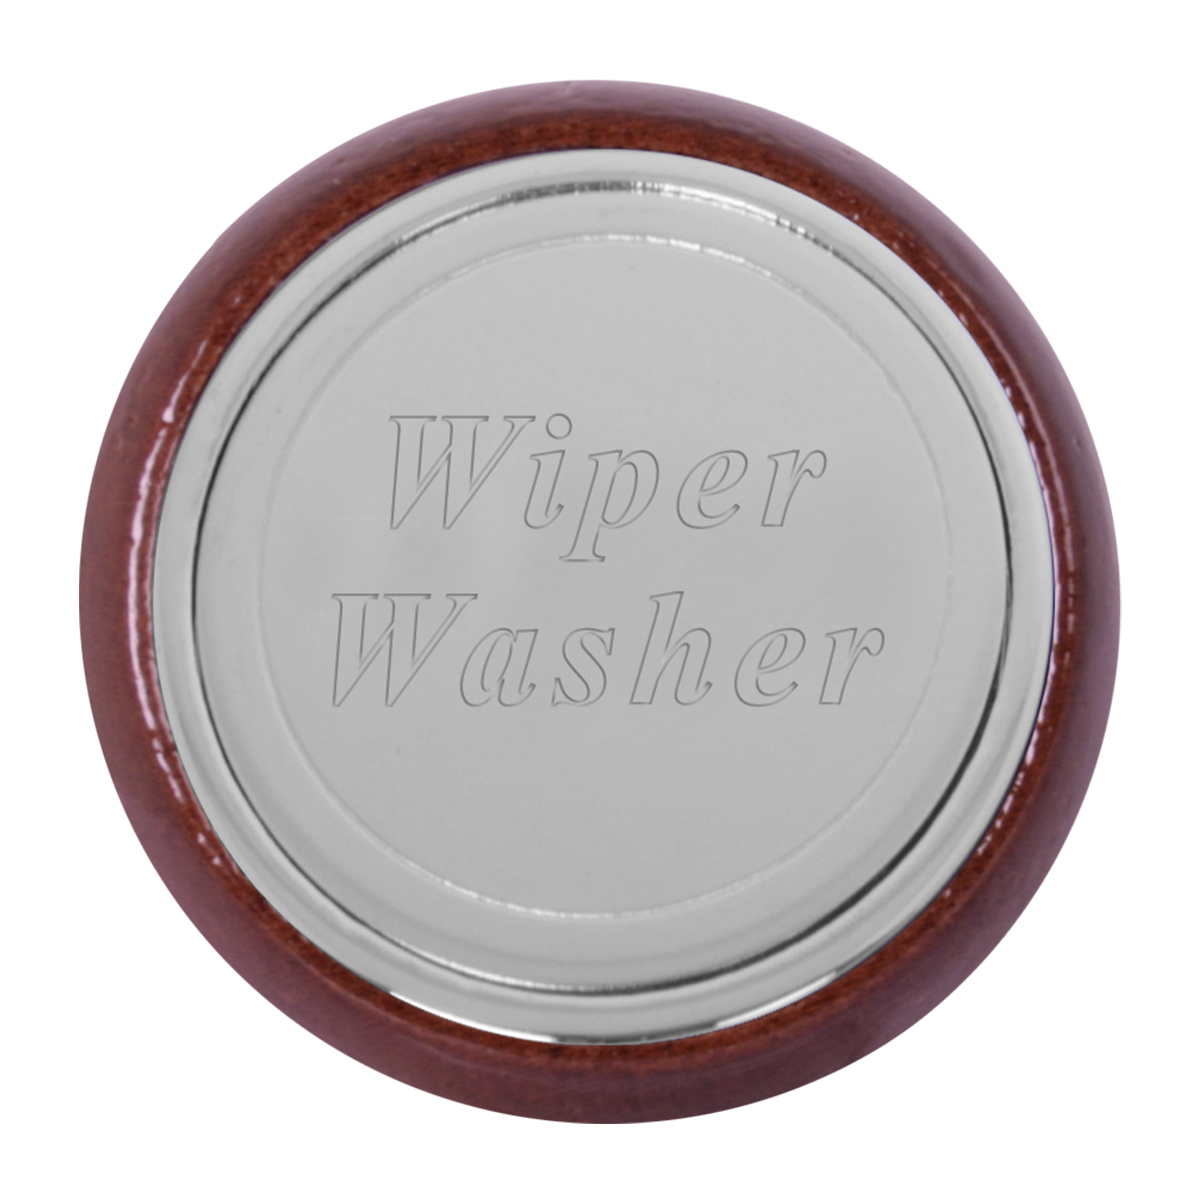 96032 Dashboard Control Knob w/ Wiper/Washer Script